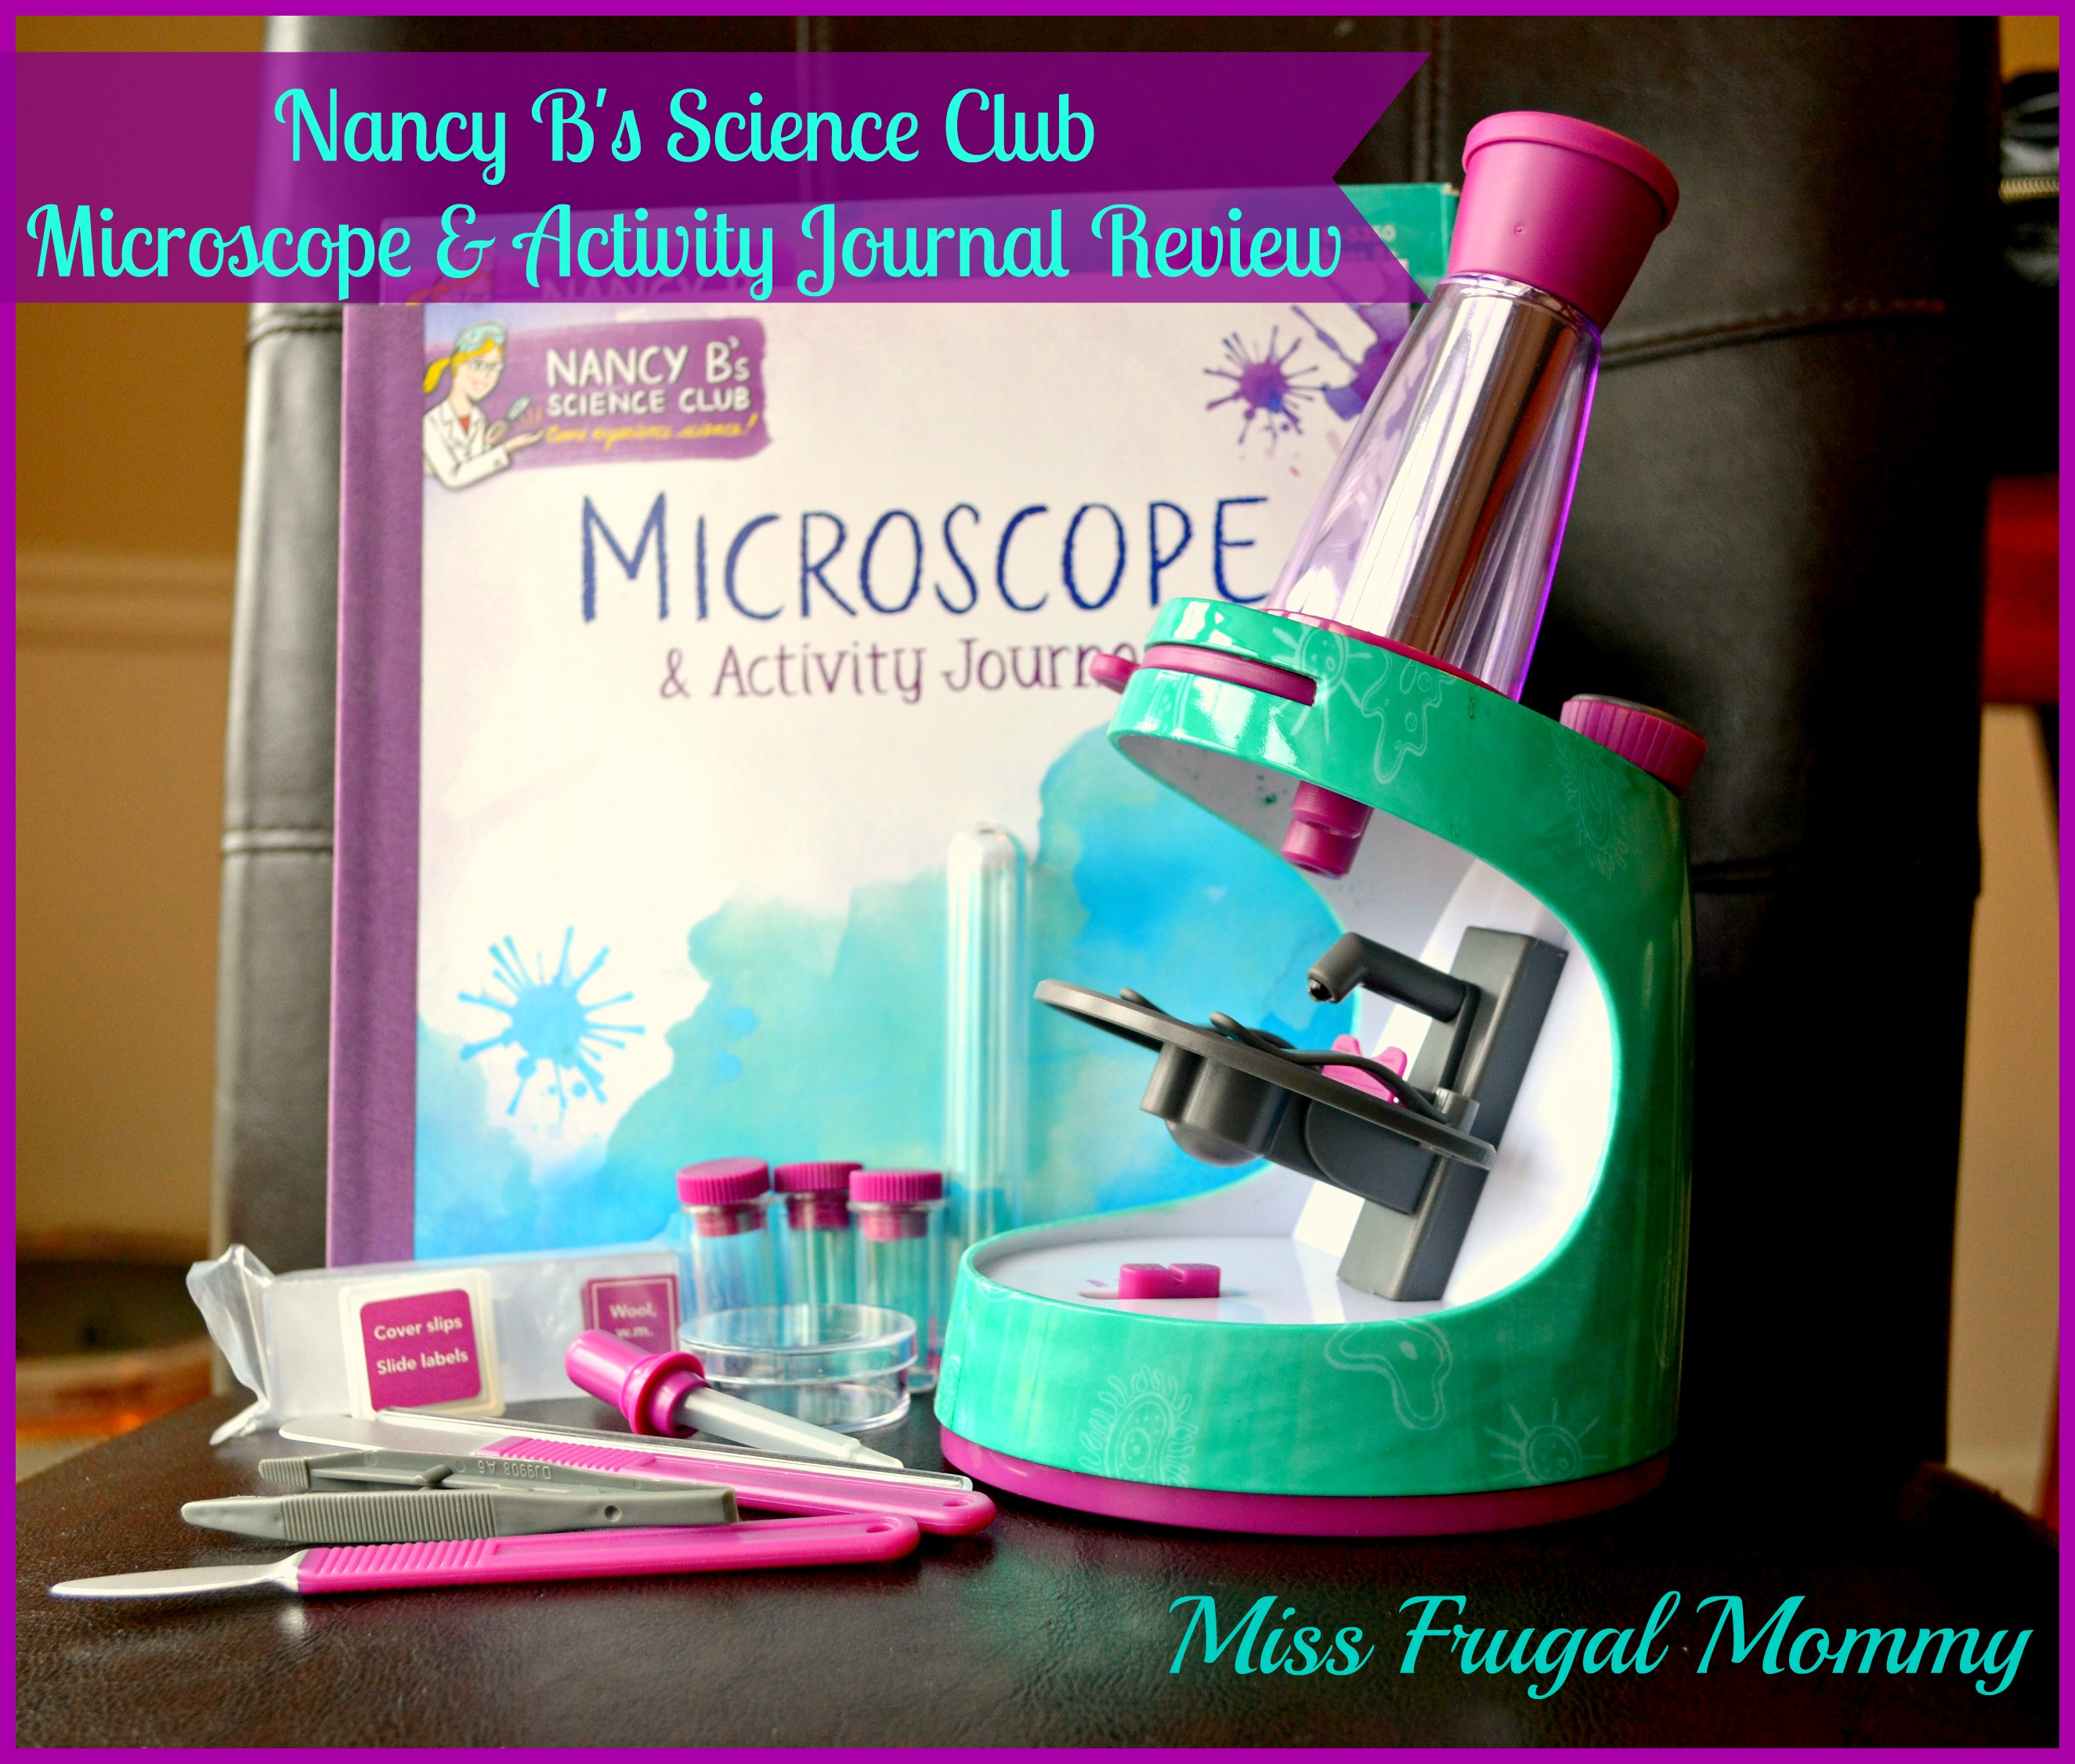 Nancy B's Microscope by Educational Insights‏ Review